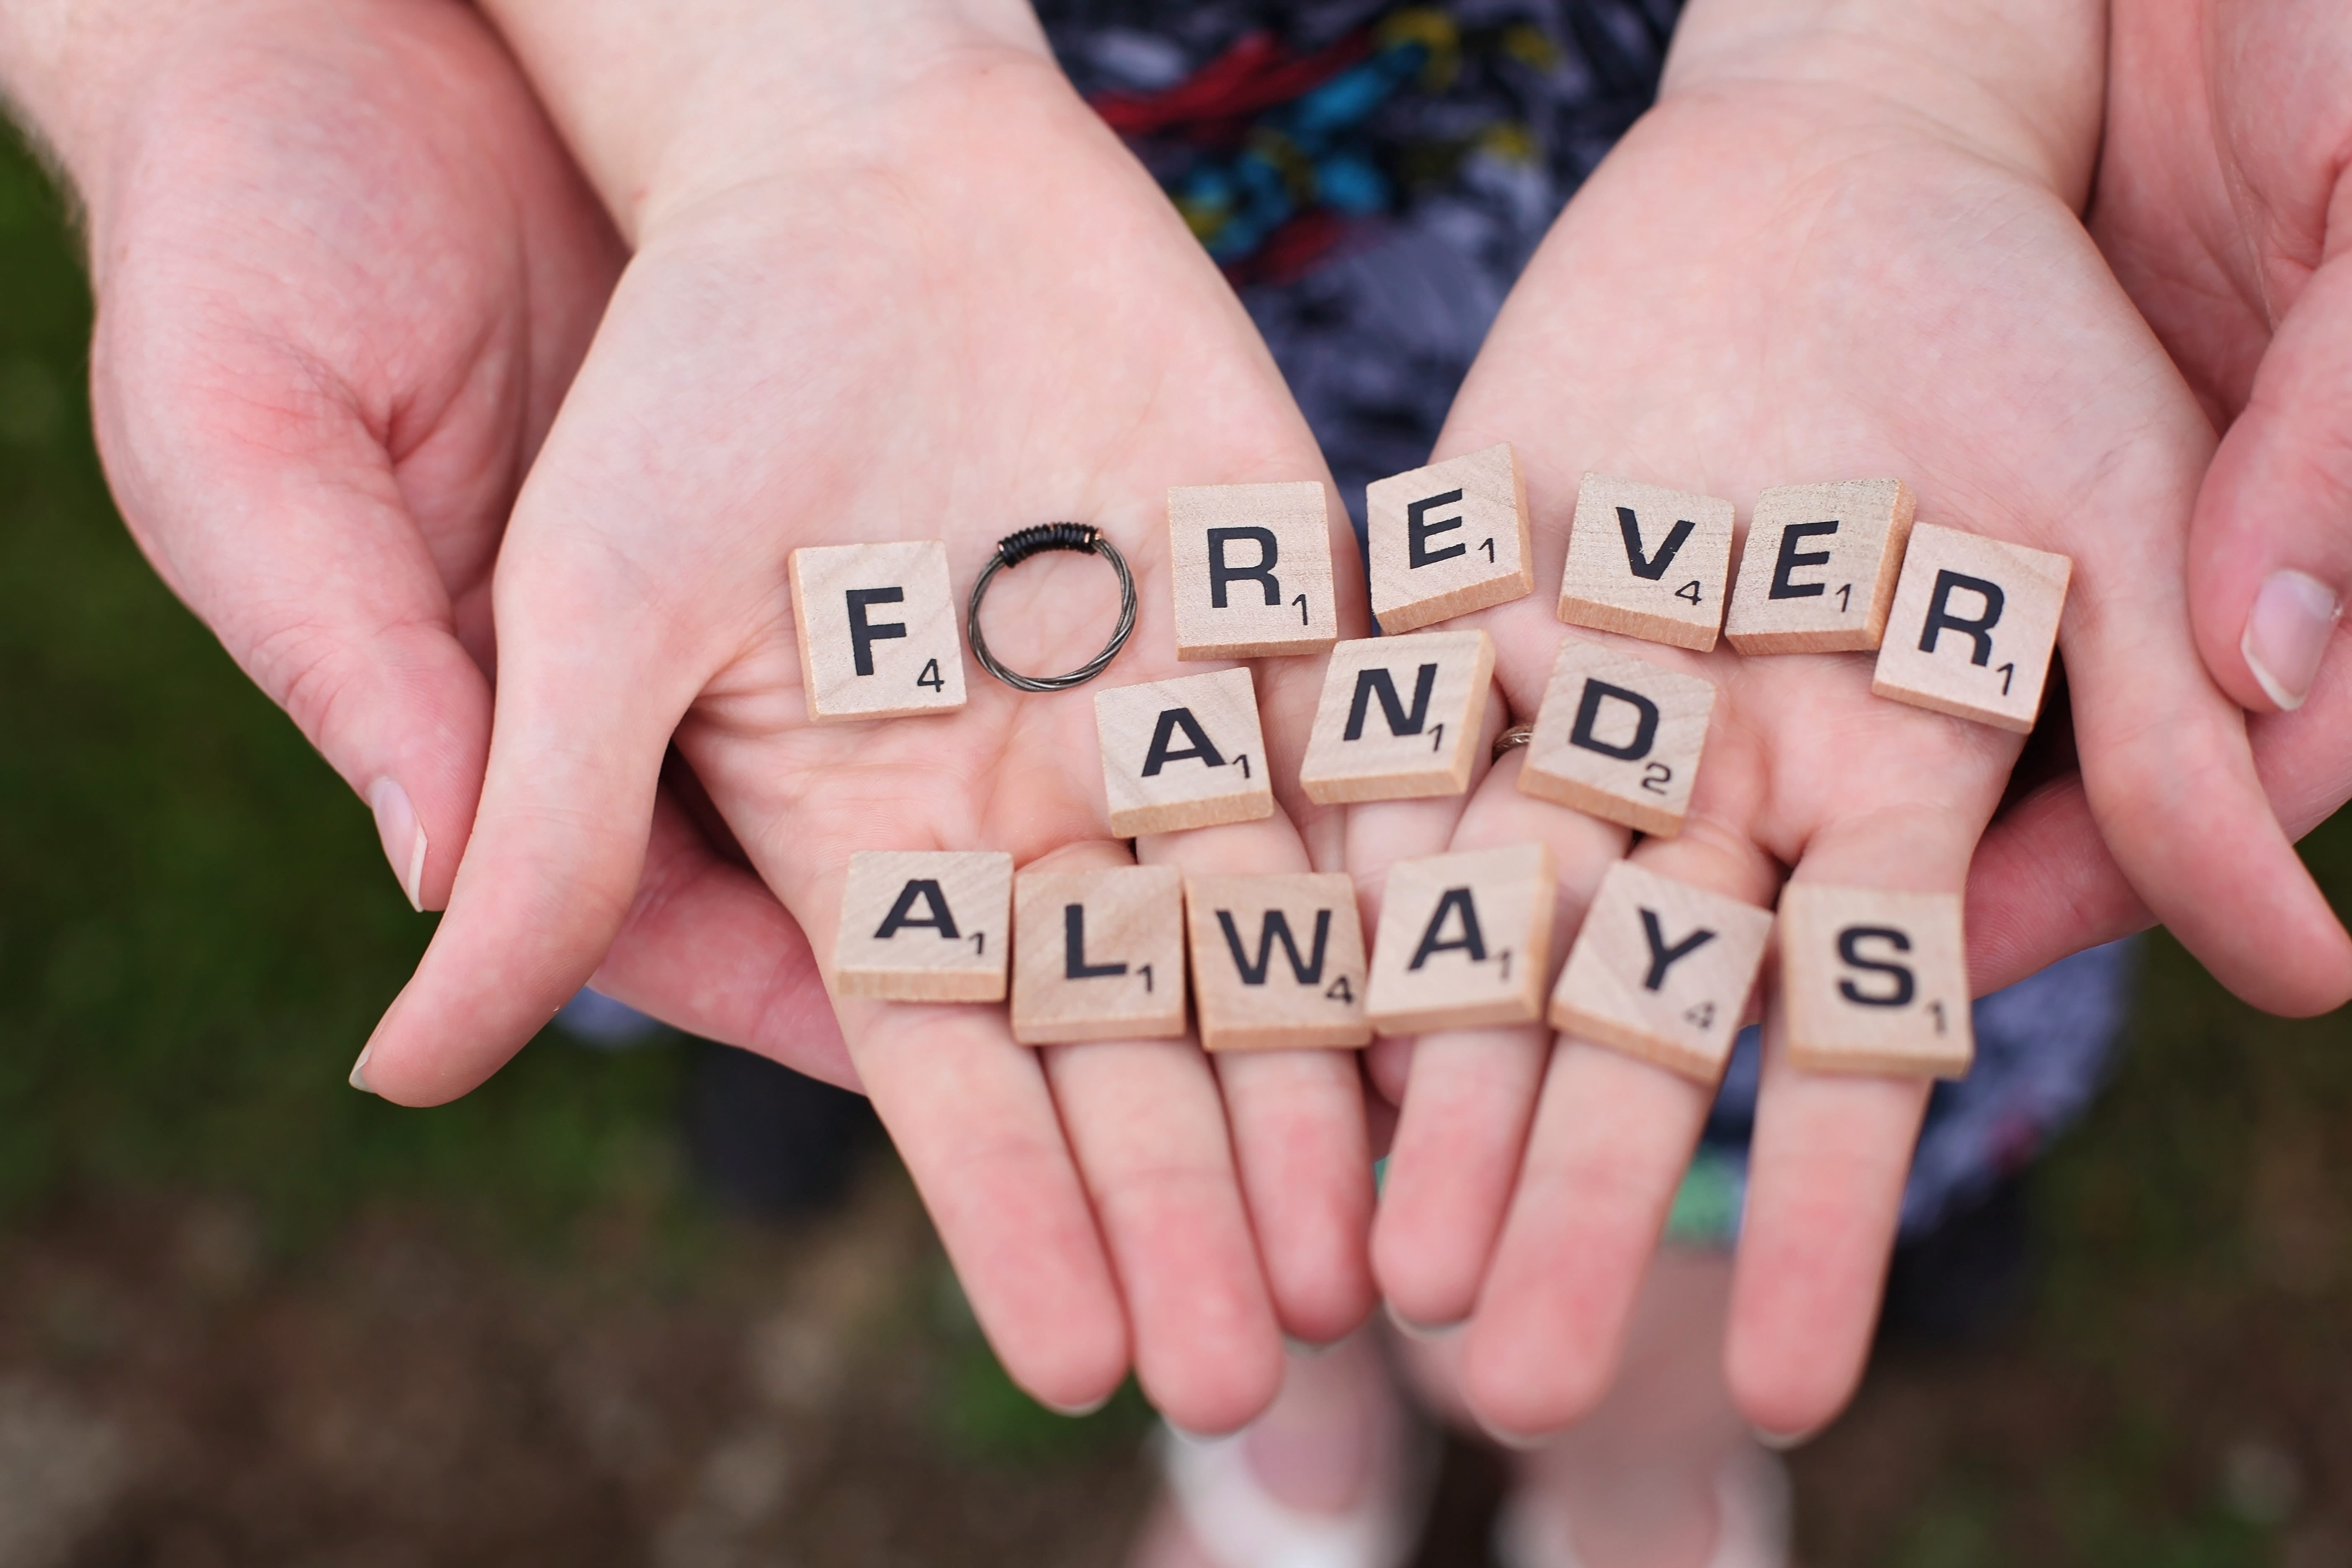 5616x3744 Love Always And Forever Wallpapers For Desktop And ...